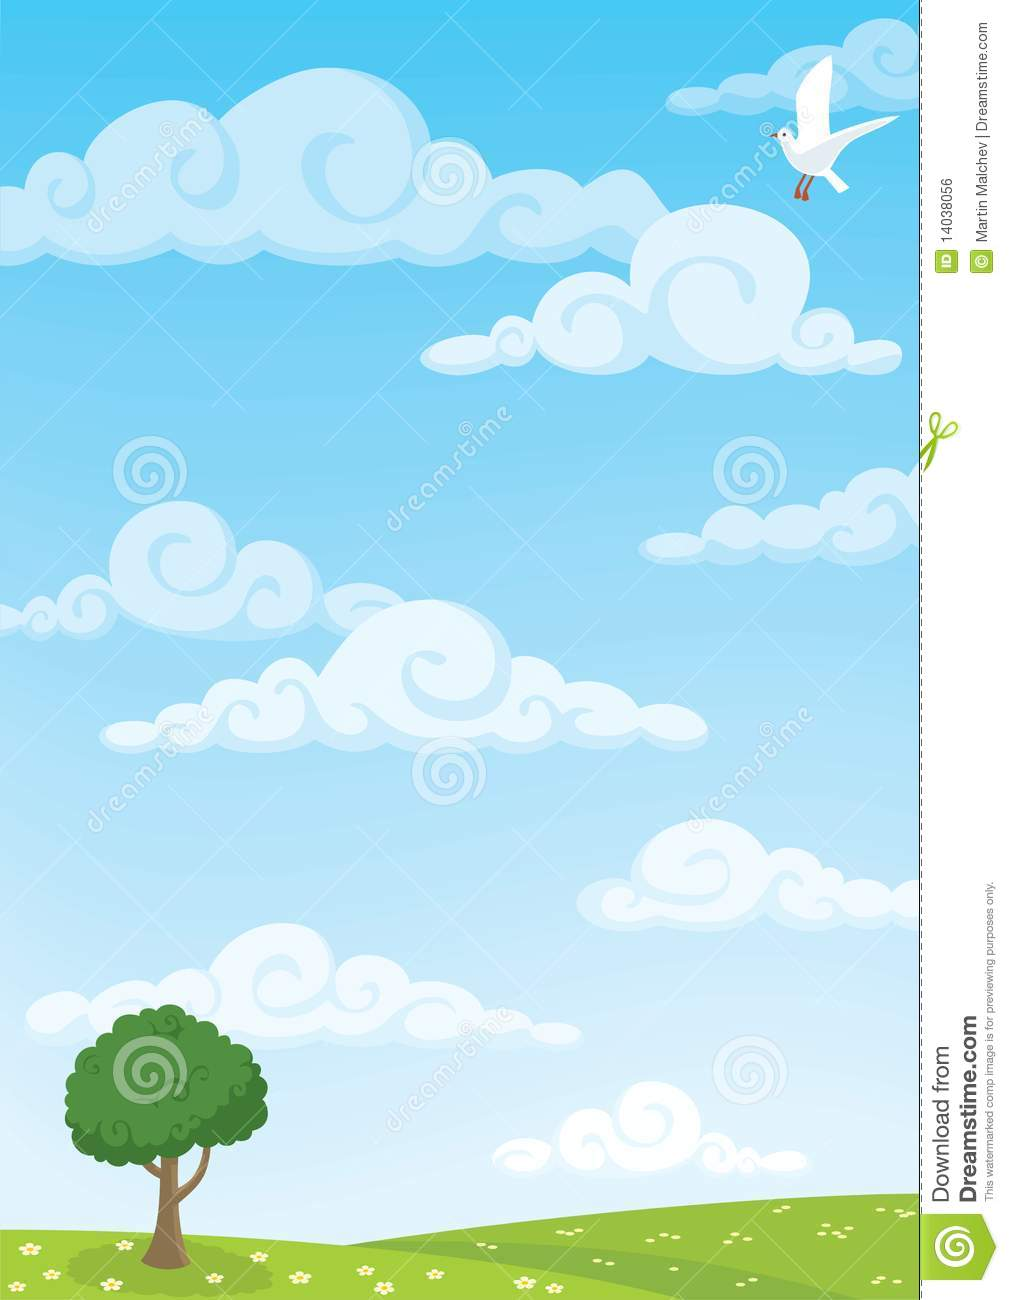 Meadow Background Royalty Free Stock Image Image 14038056